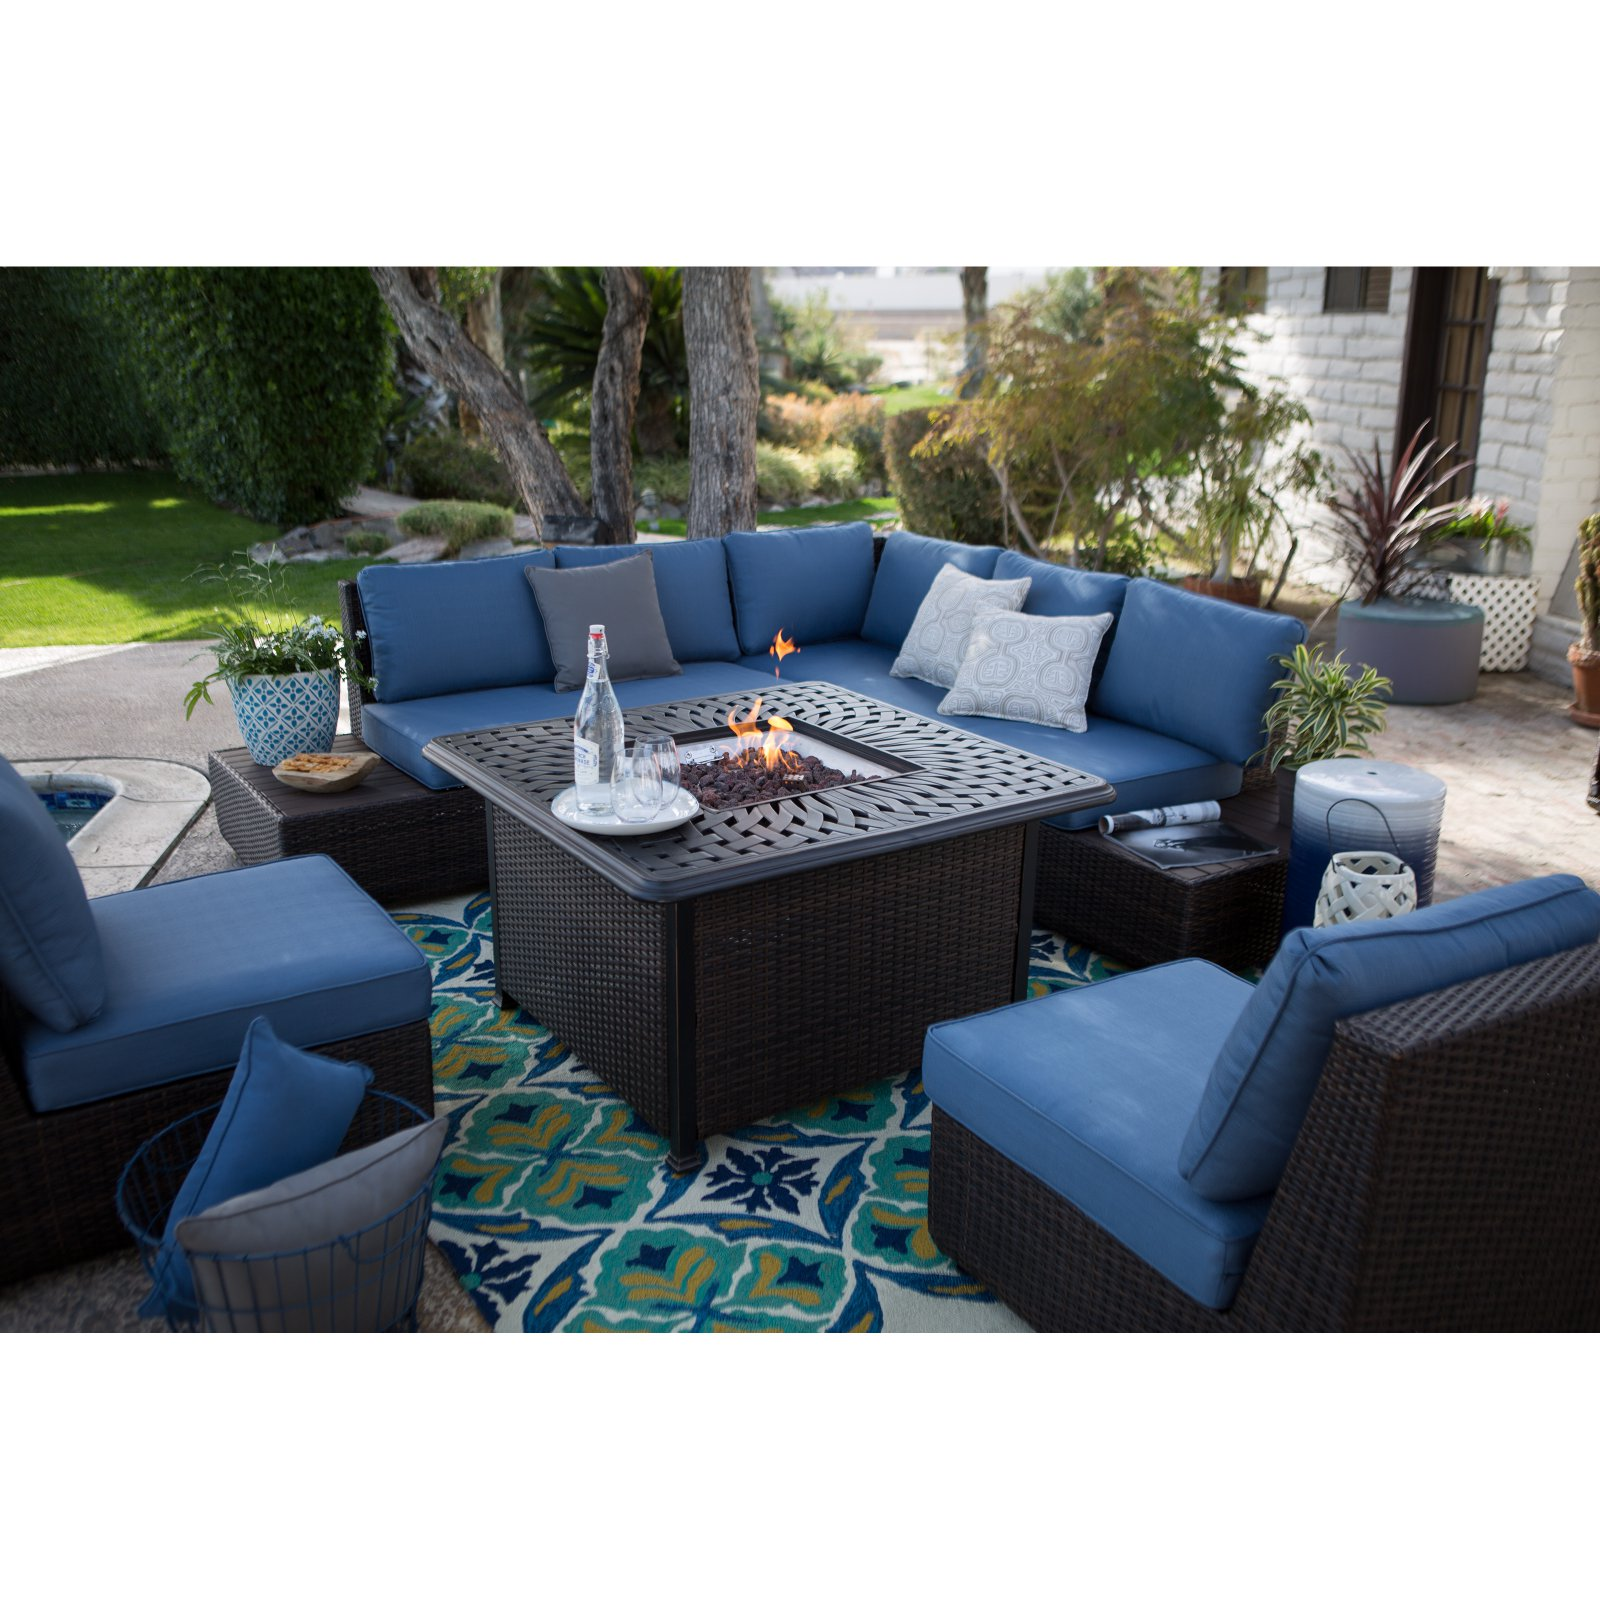 Belham Living Luciana Bay Wicker Sofa Sectional Set with Florentine Fire Pit